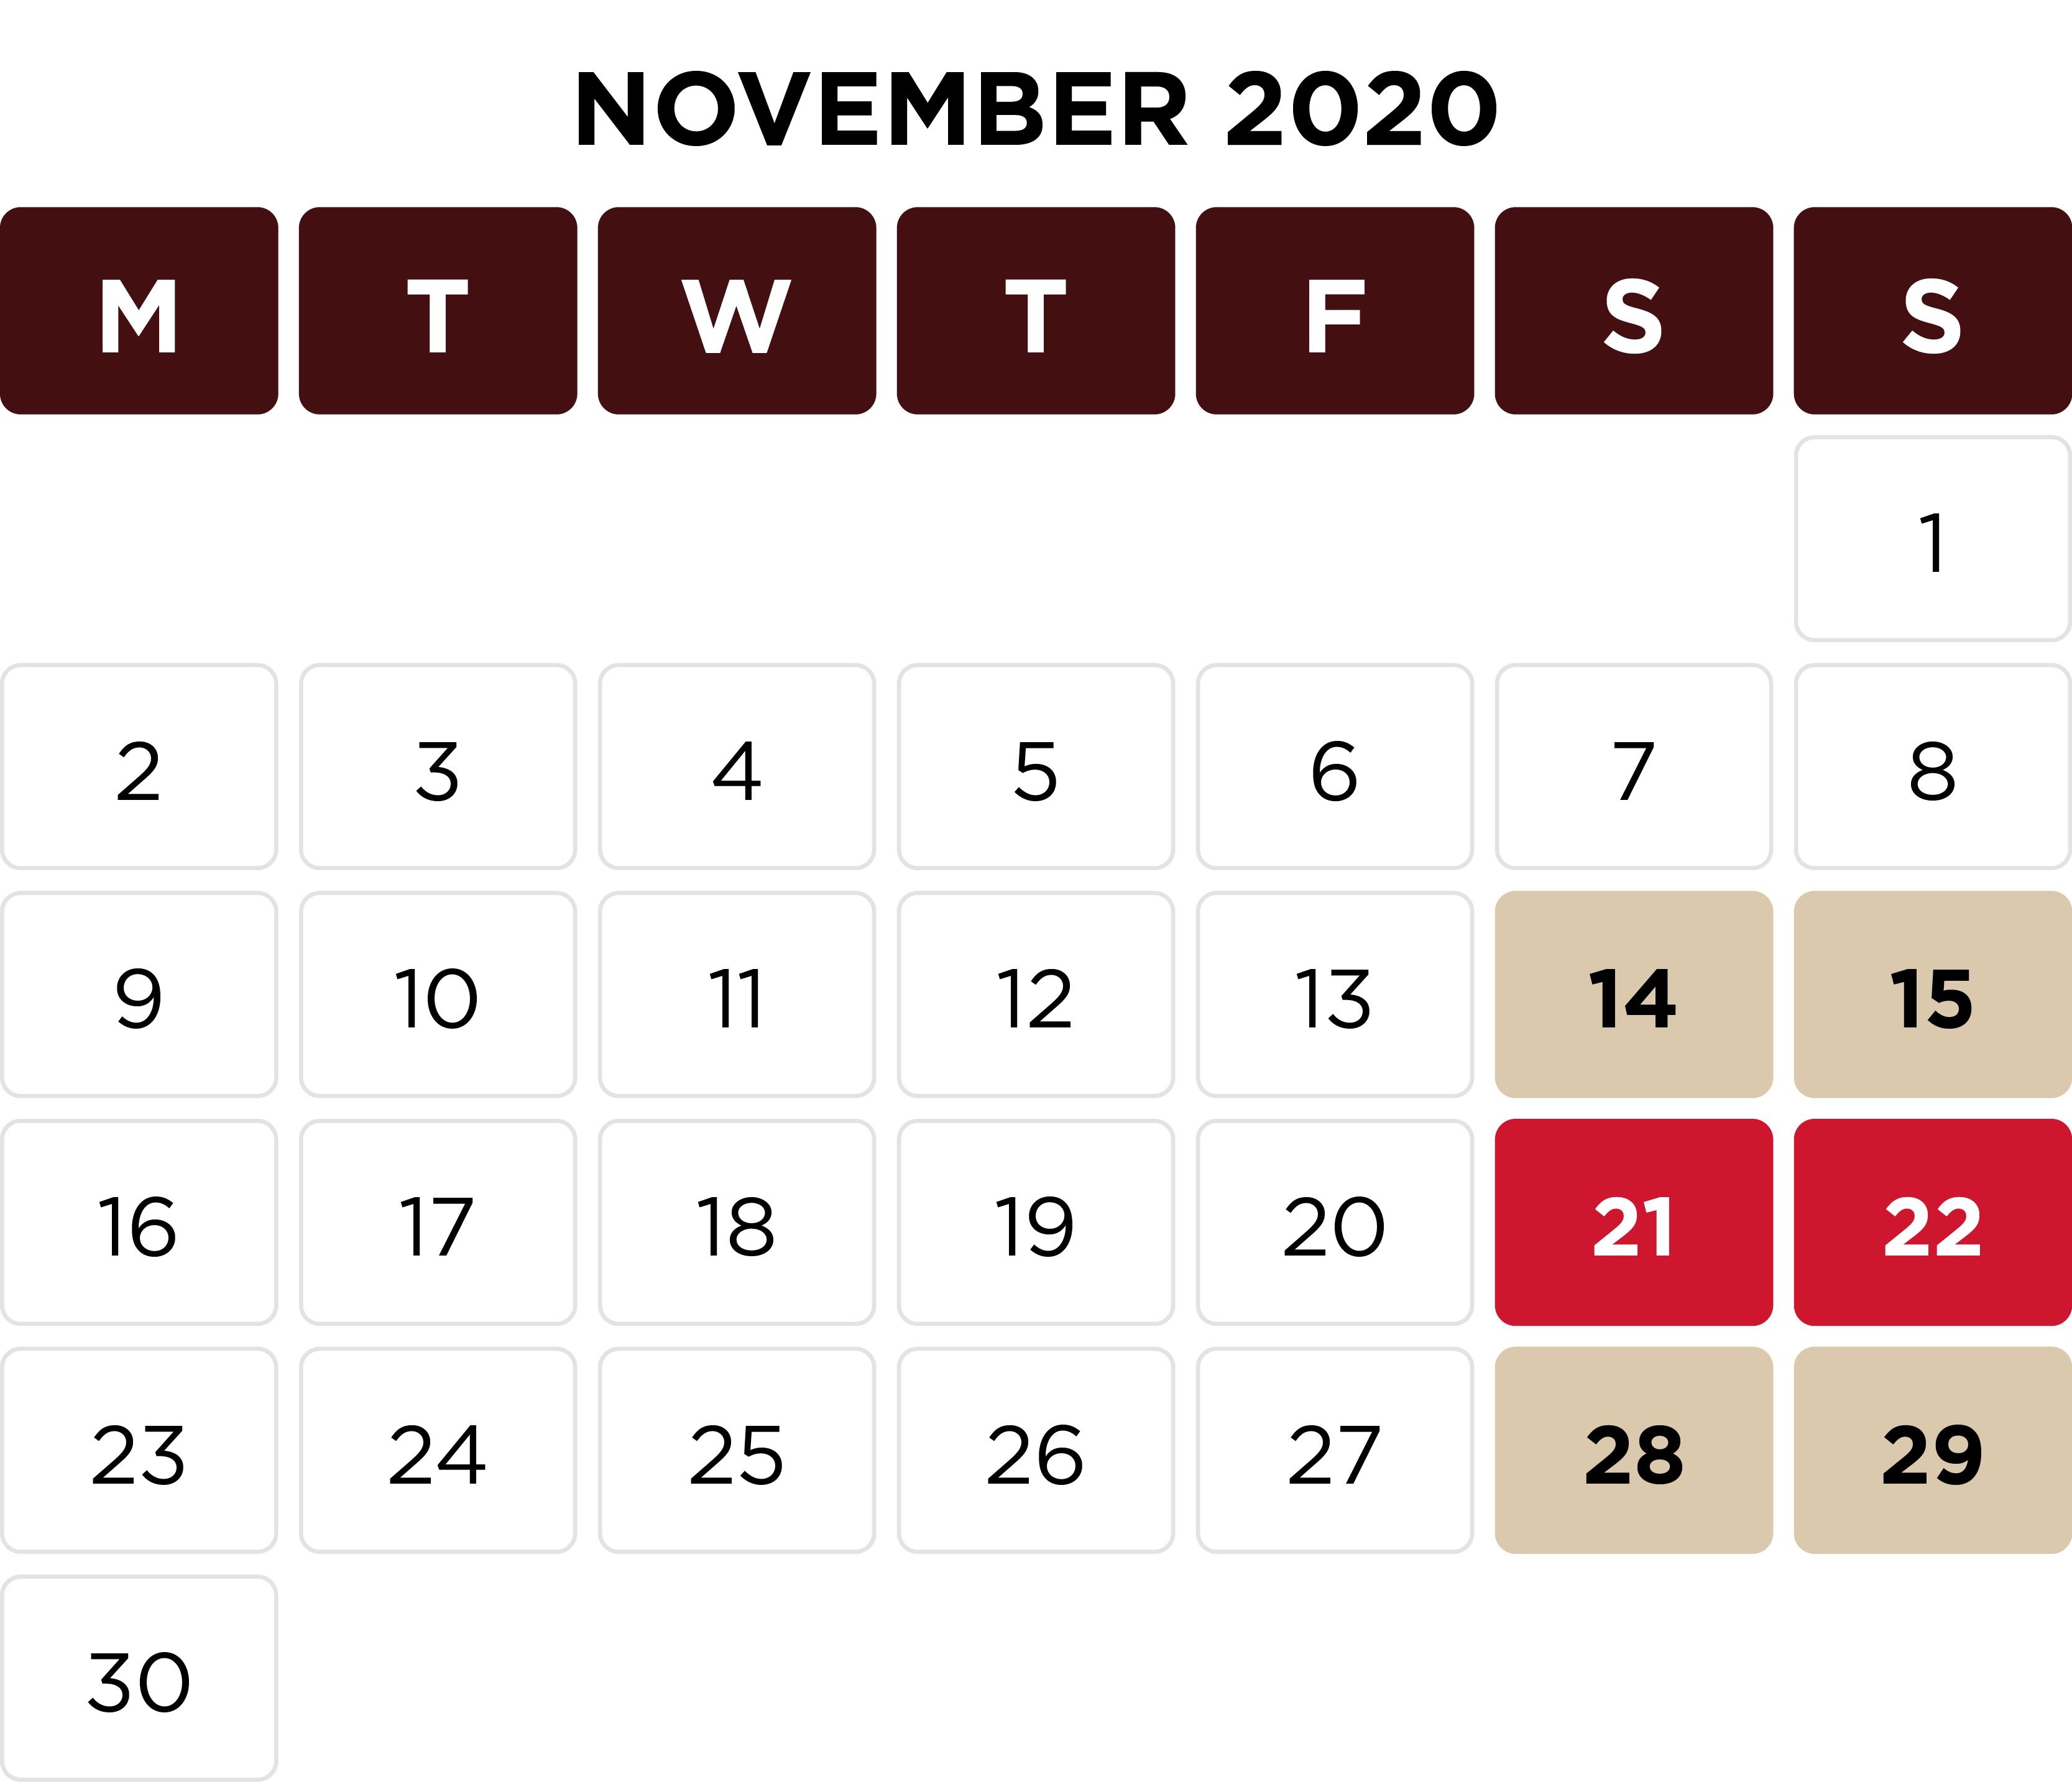 LNER1078 East Coast Upgrade 2020-21 Dates - Web Graphic Month Supply 800x688px - 01 November 2020.png